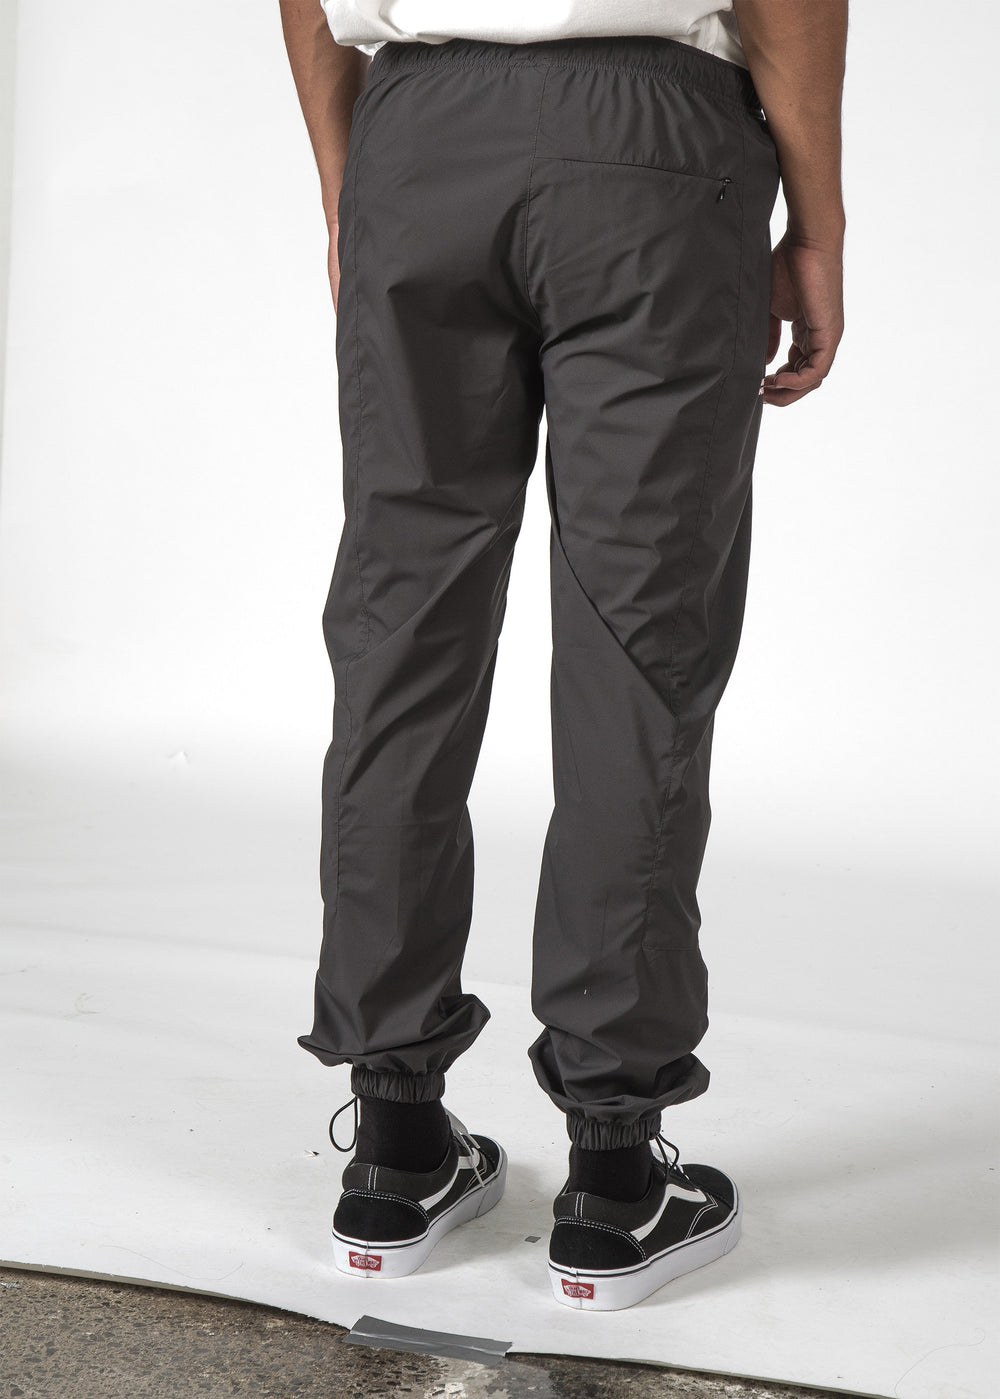 THE METRIC PANT OFF BLACK/BLACK